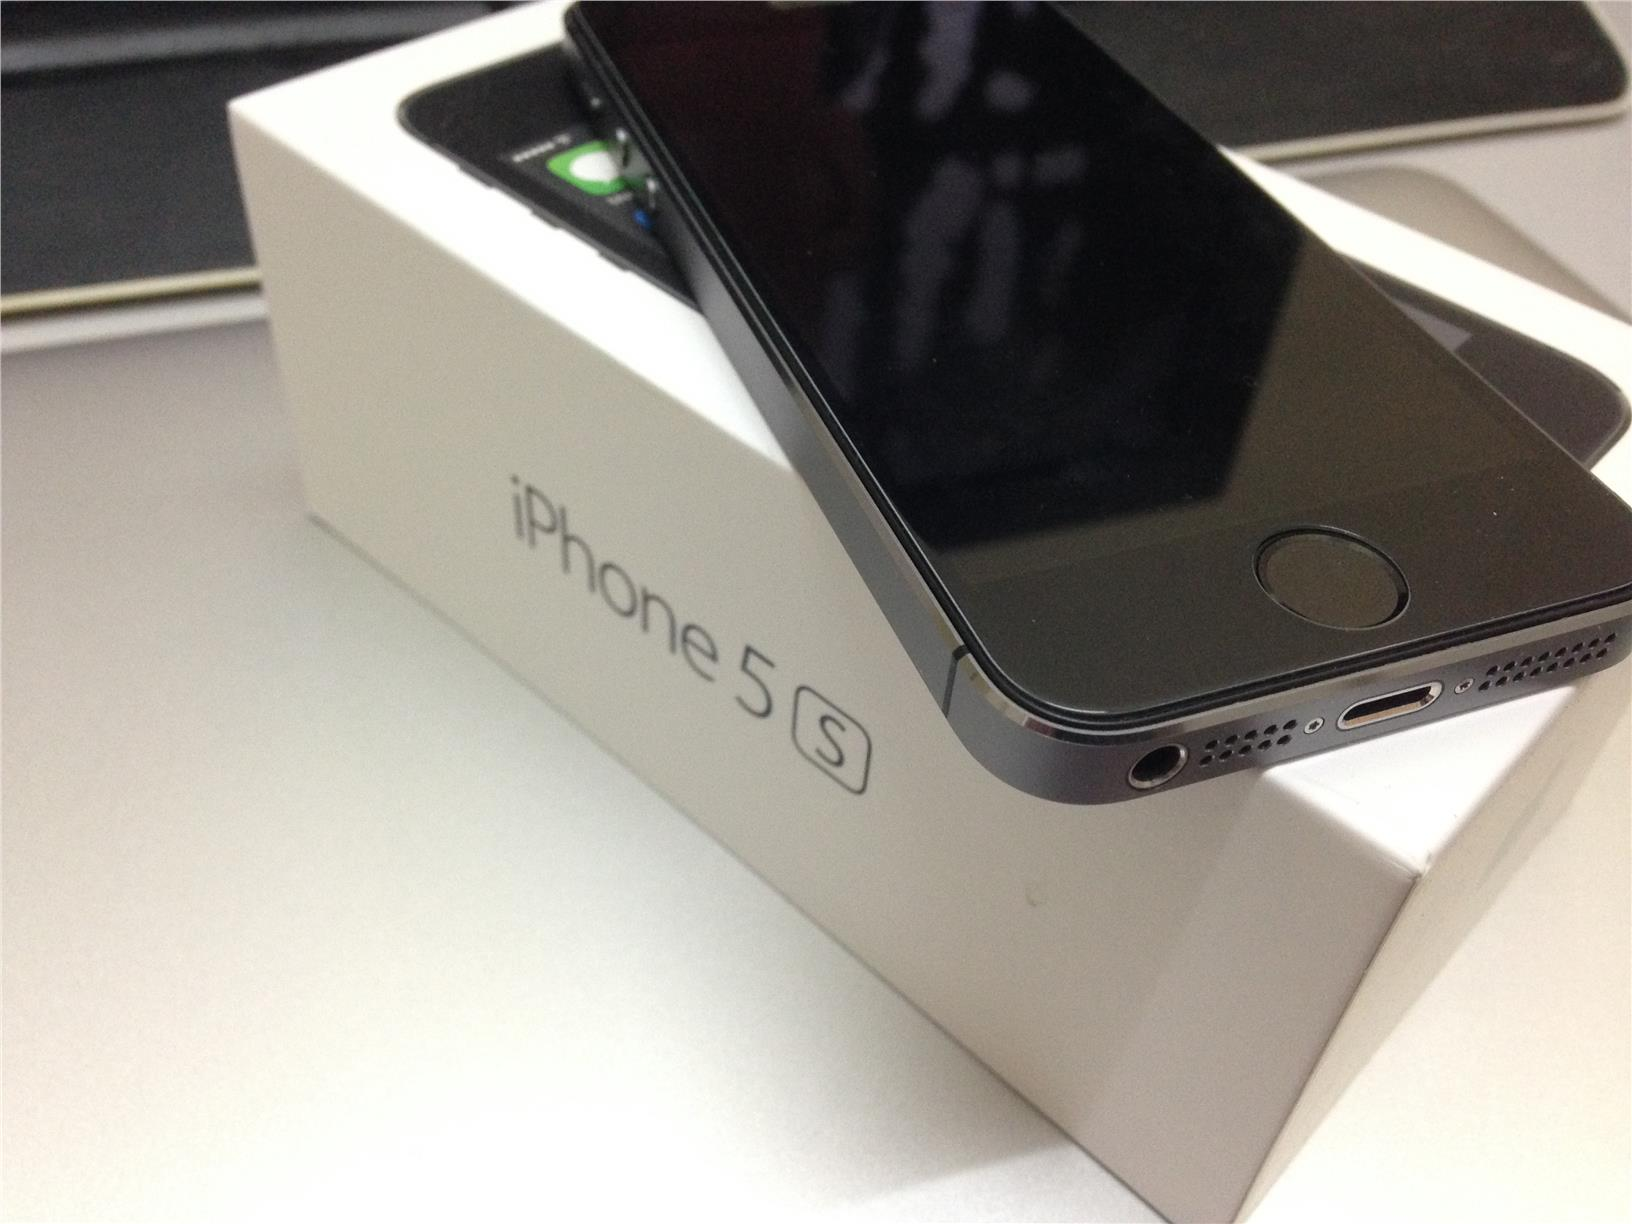 Ap apple iphone 5s space gray 32gb - Iphone 5s 32gb Space Gray